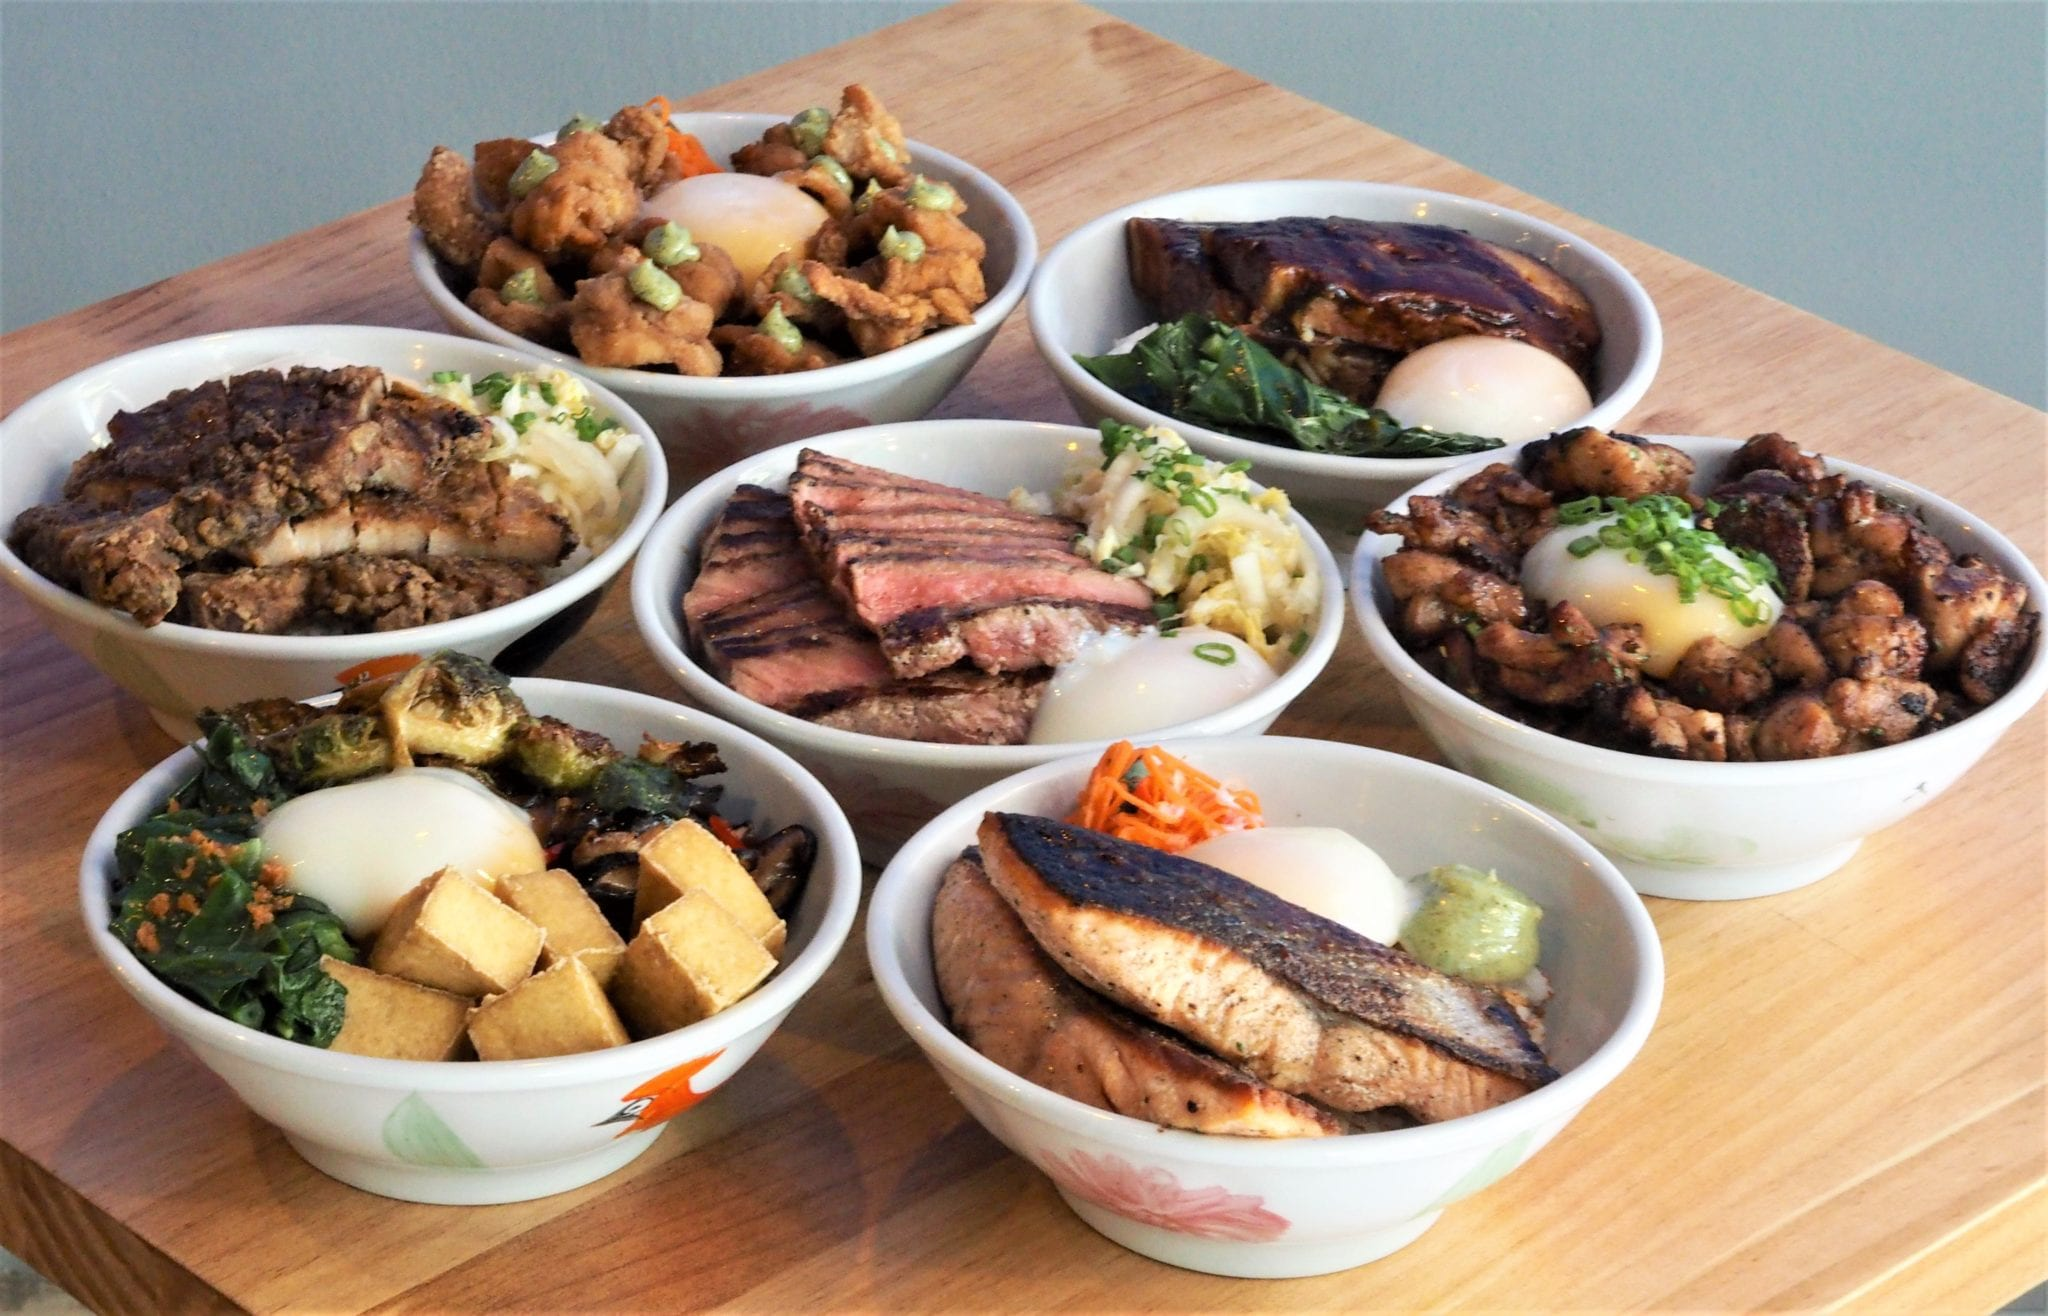 seven Taiwanese style rice bowls